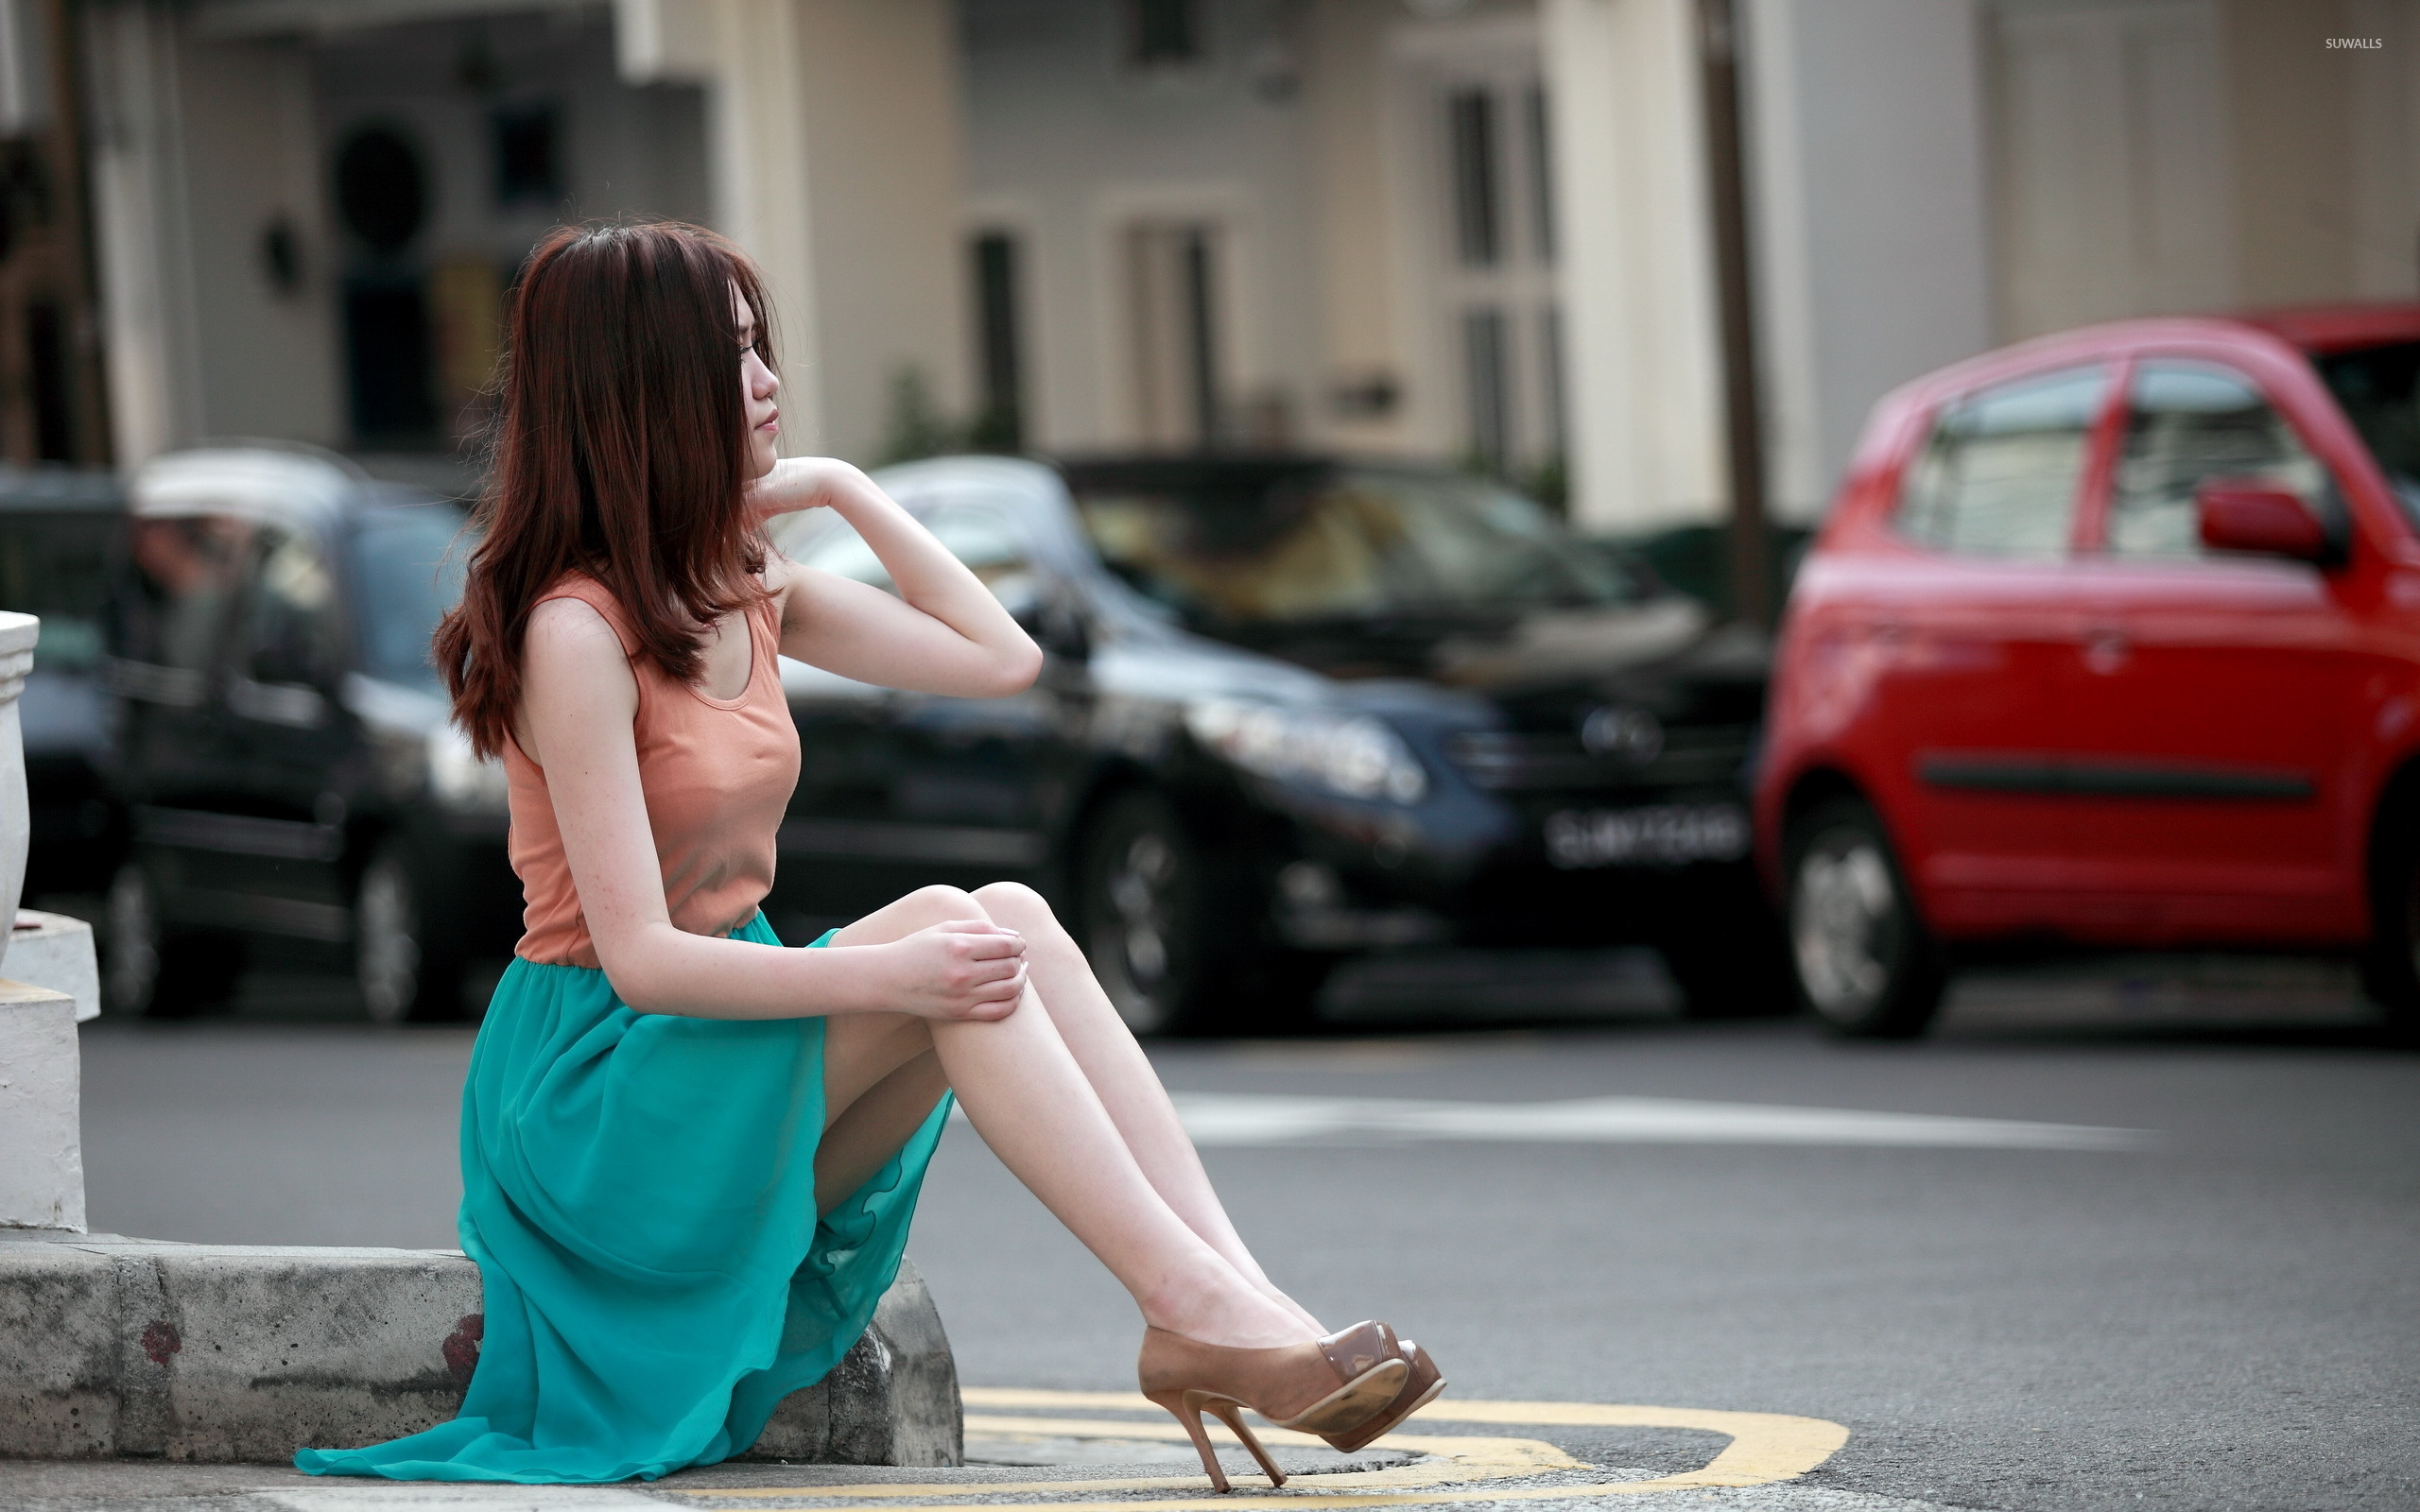 A Girl Sitting Alone Wallpapers Model Sitting On The Sidewalk Wallpaper Girl Wallpapers